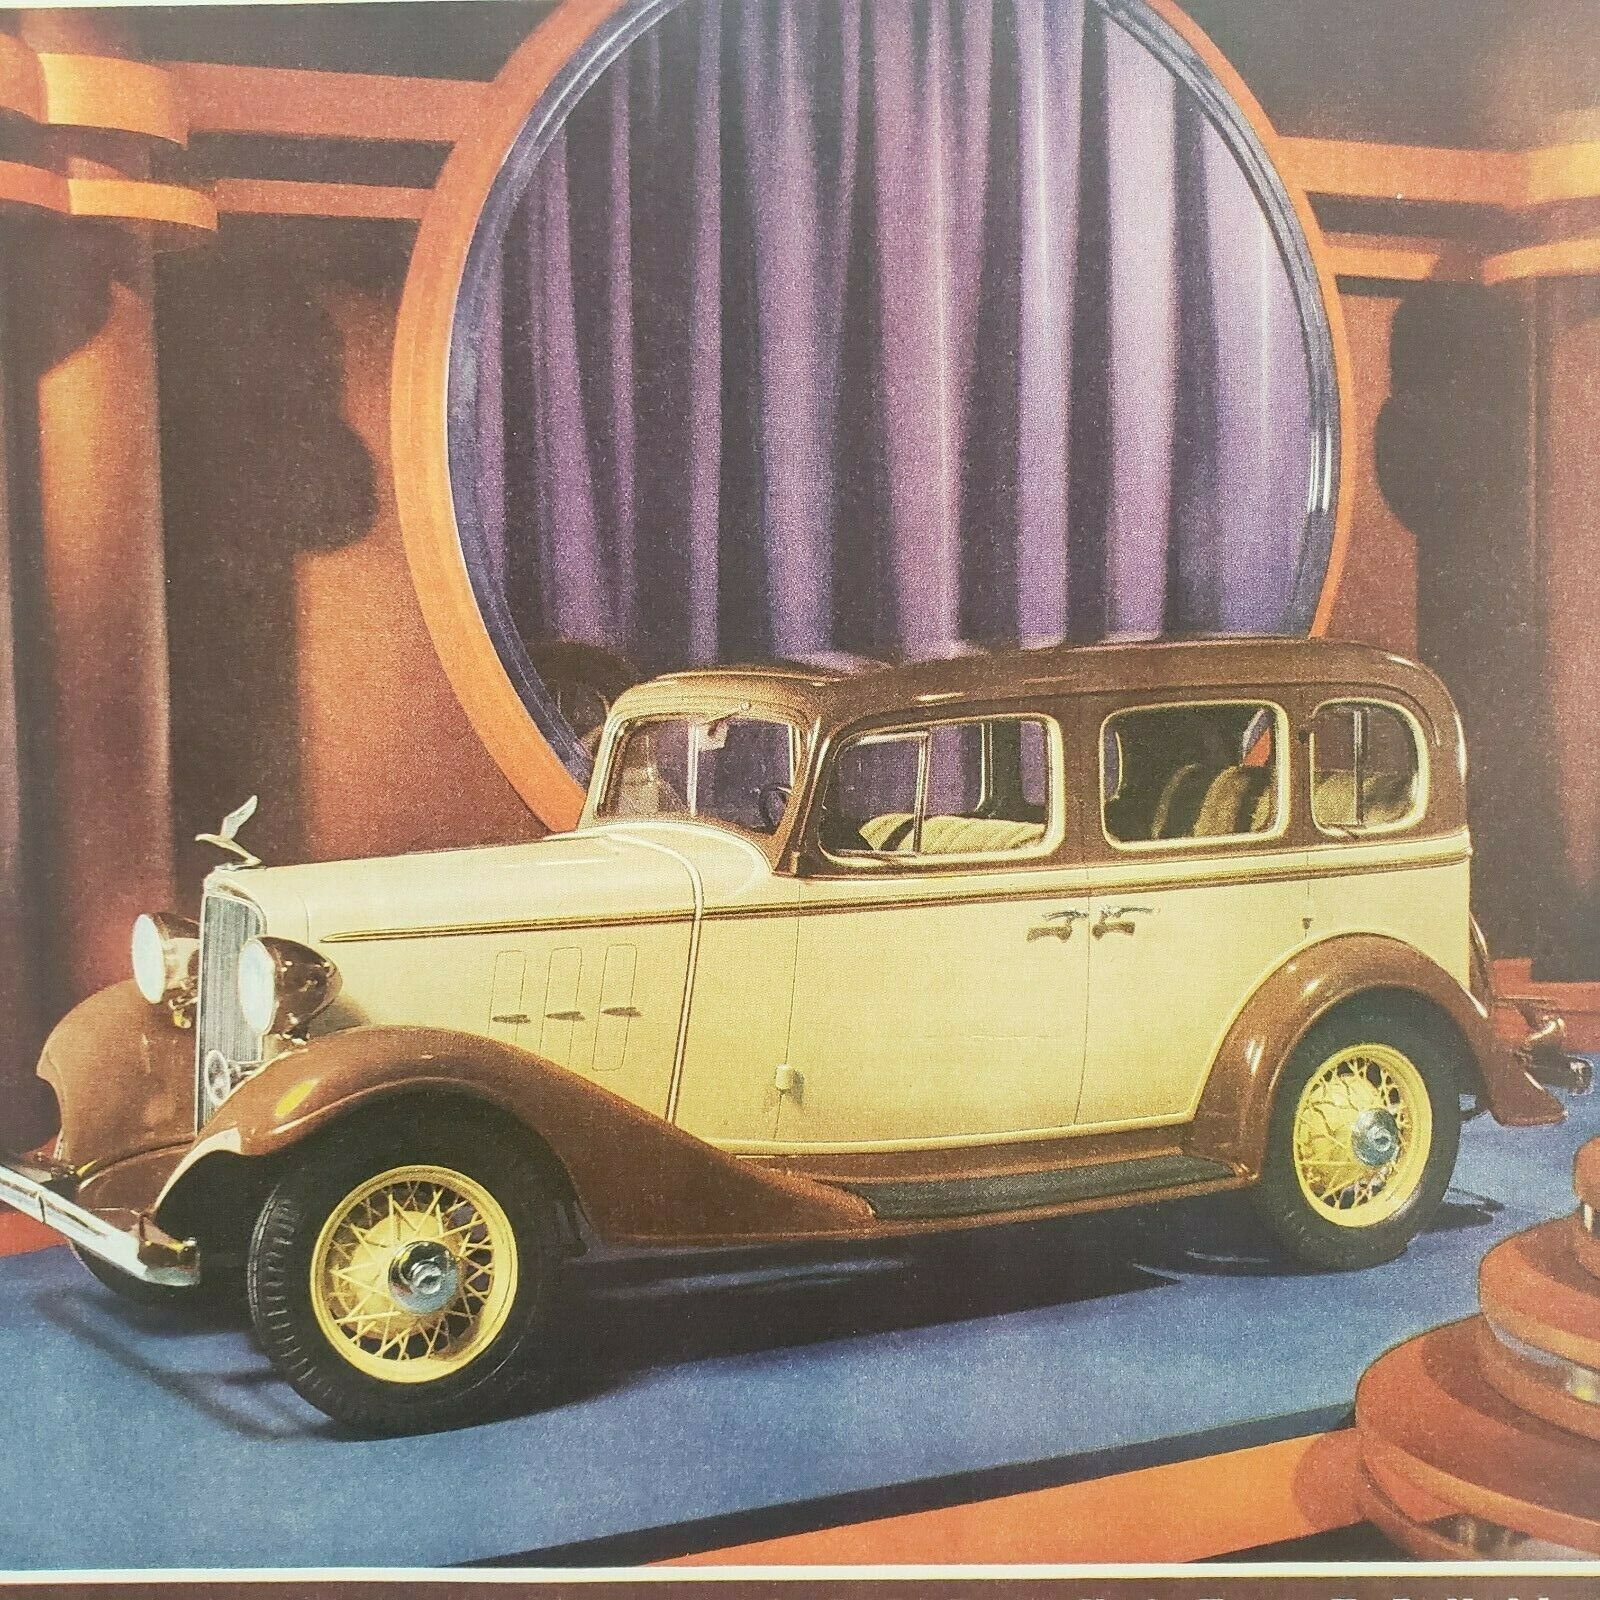 Primary image for 1933 Saturday Evening Post Chevrolet Print Ad Sport Roadster Coupe Sedan Phaeton